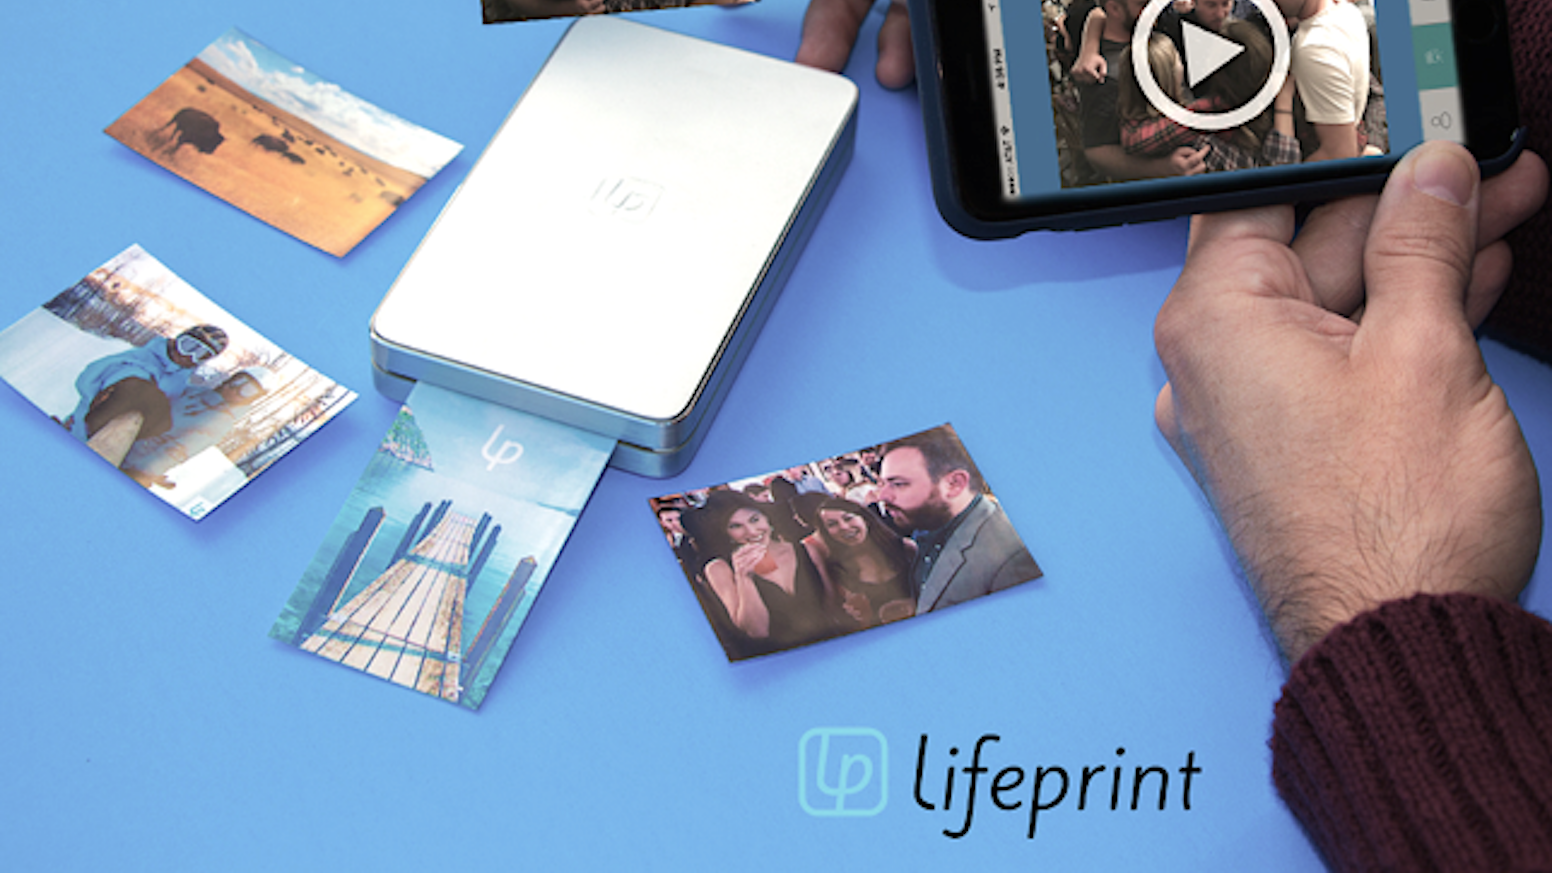 Print Apple Live Photos, Vines, GIFs, and more with this Augmented Reality photo AND video printer! For IOS, Android, and GoPro